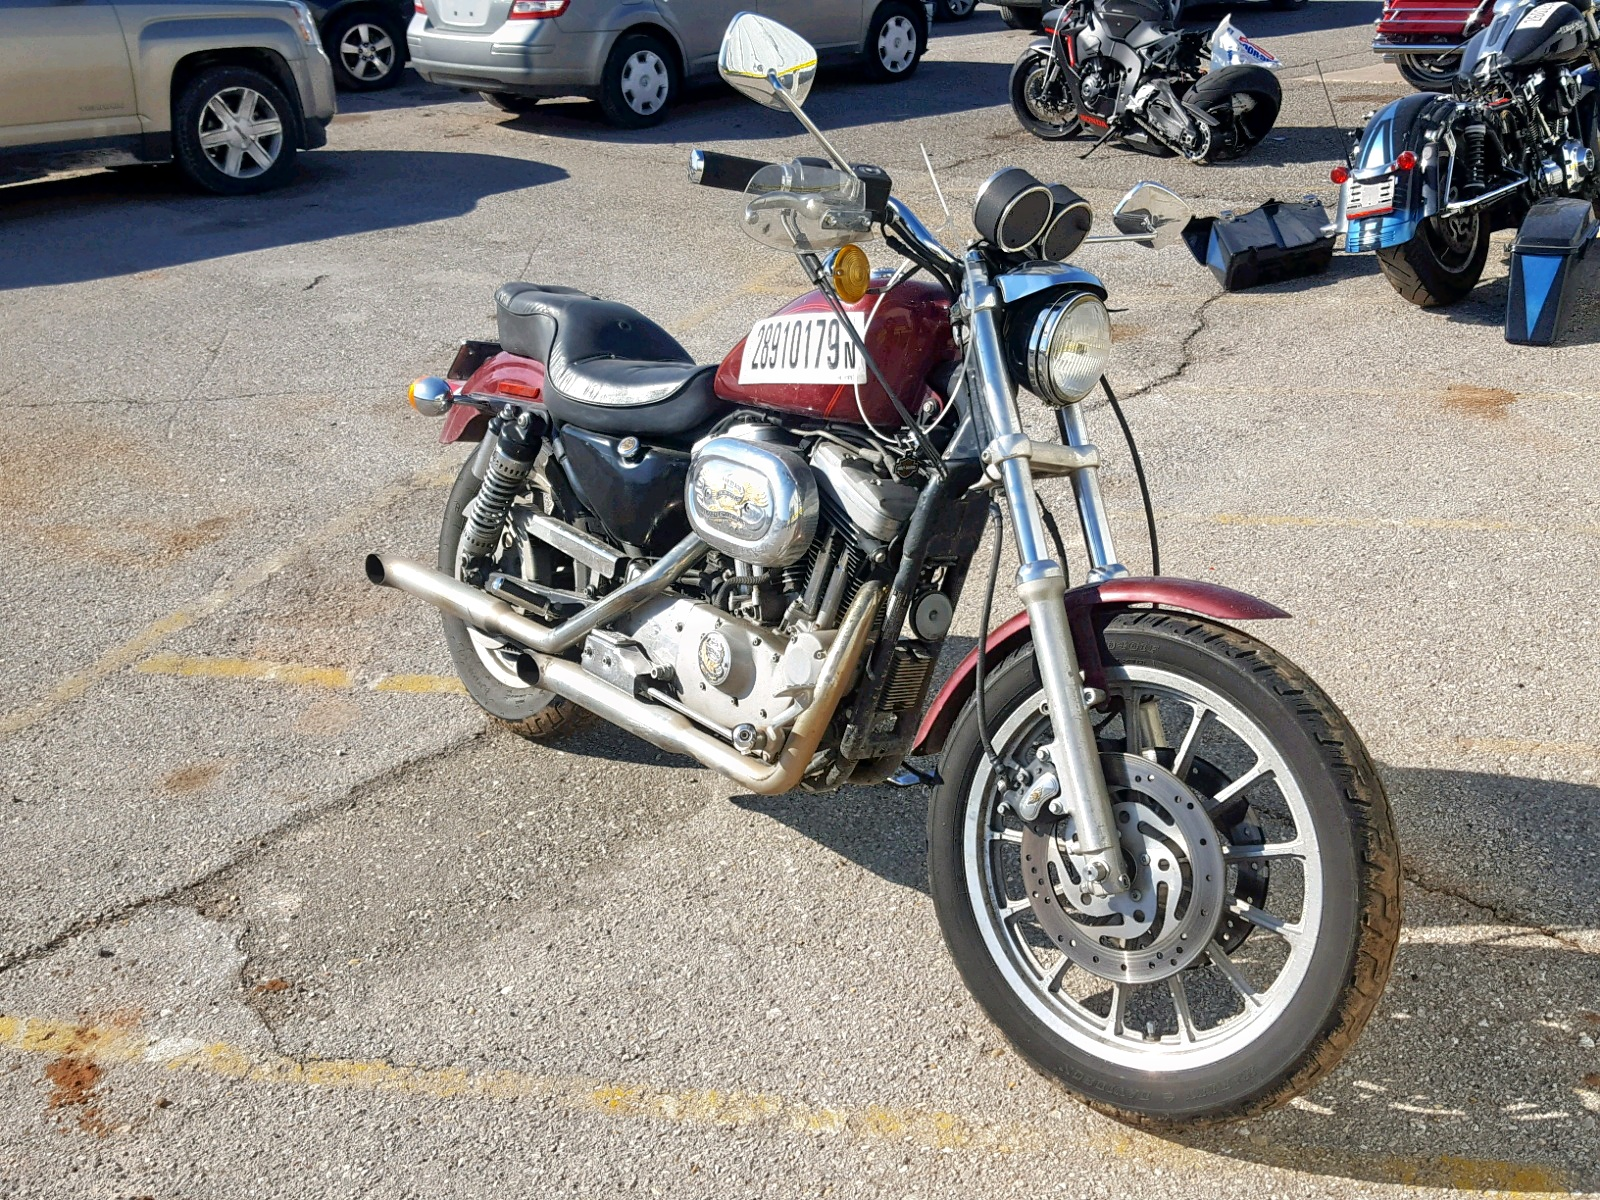 Salvage 2000 Harley-Davidson XL1200 S for sale